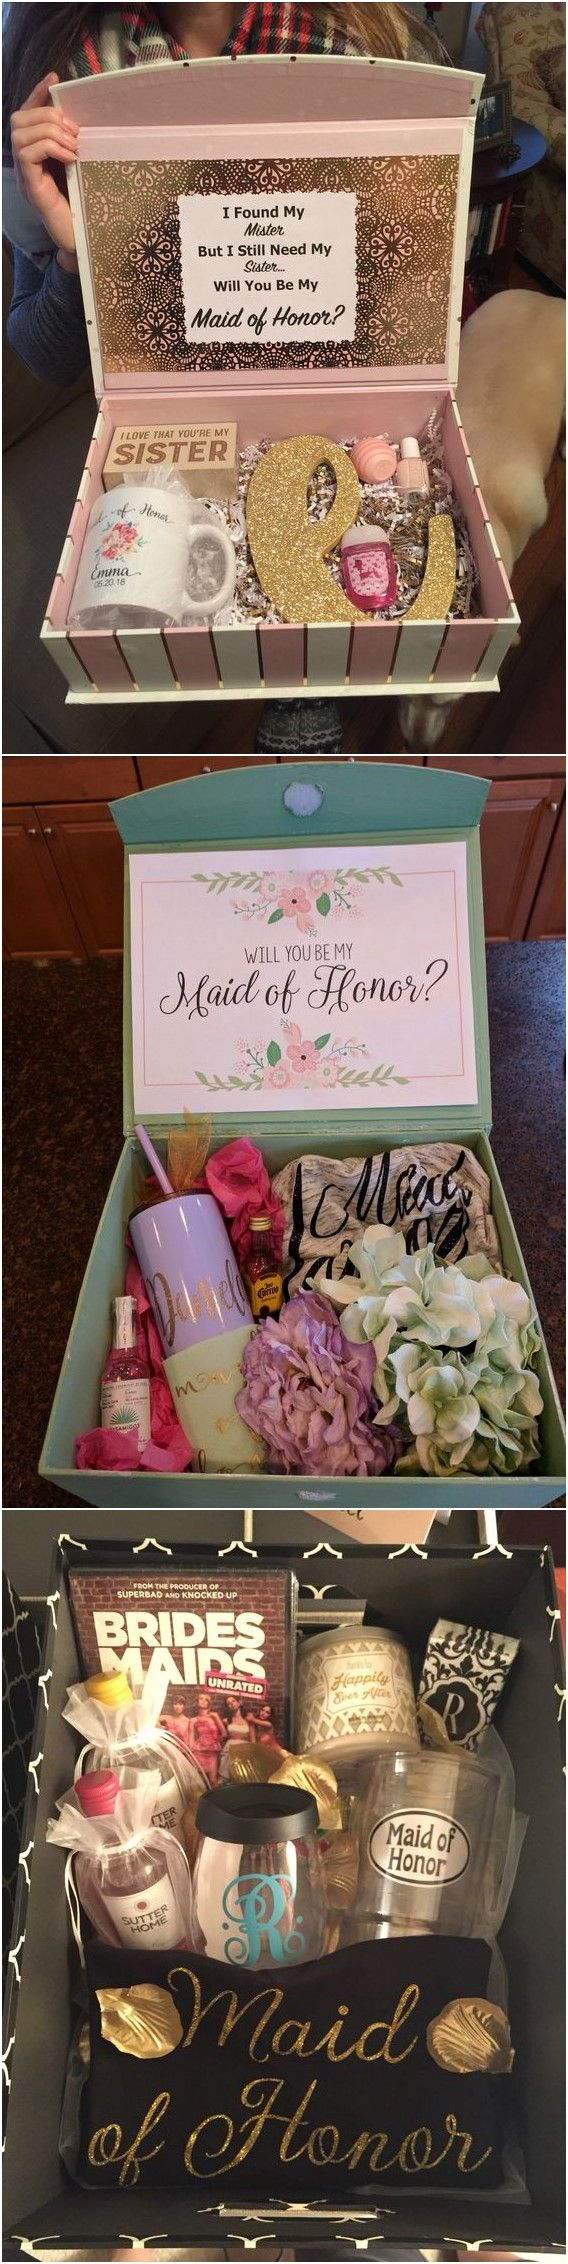 20+ Maid of Honor Proposal Ideas! She loved it and said YES! #weddingfavors